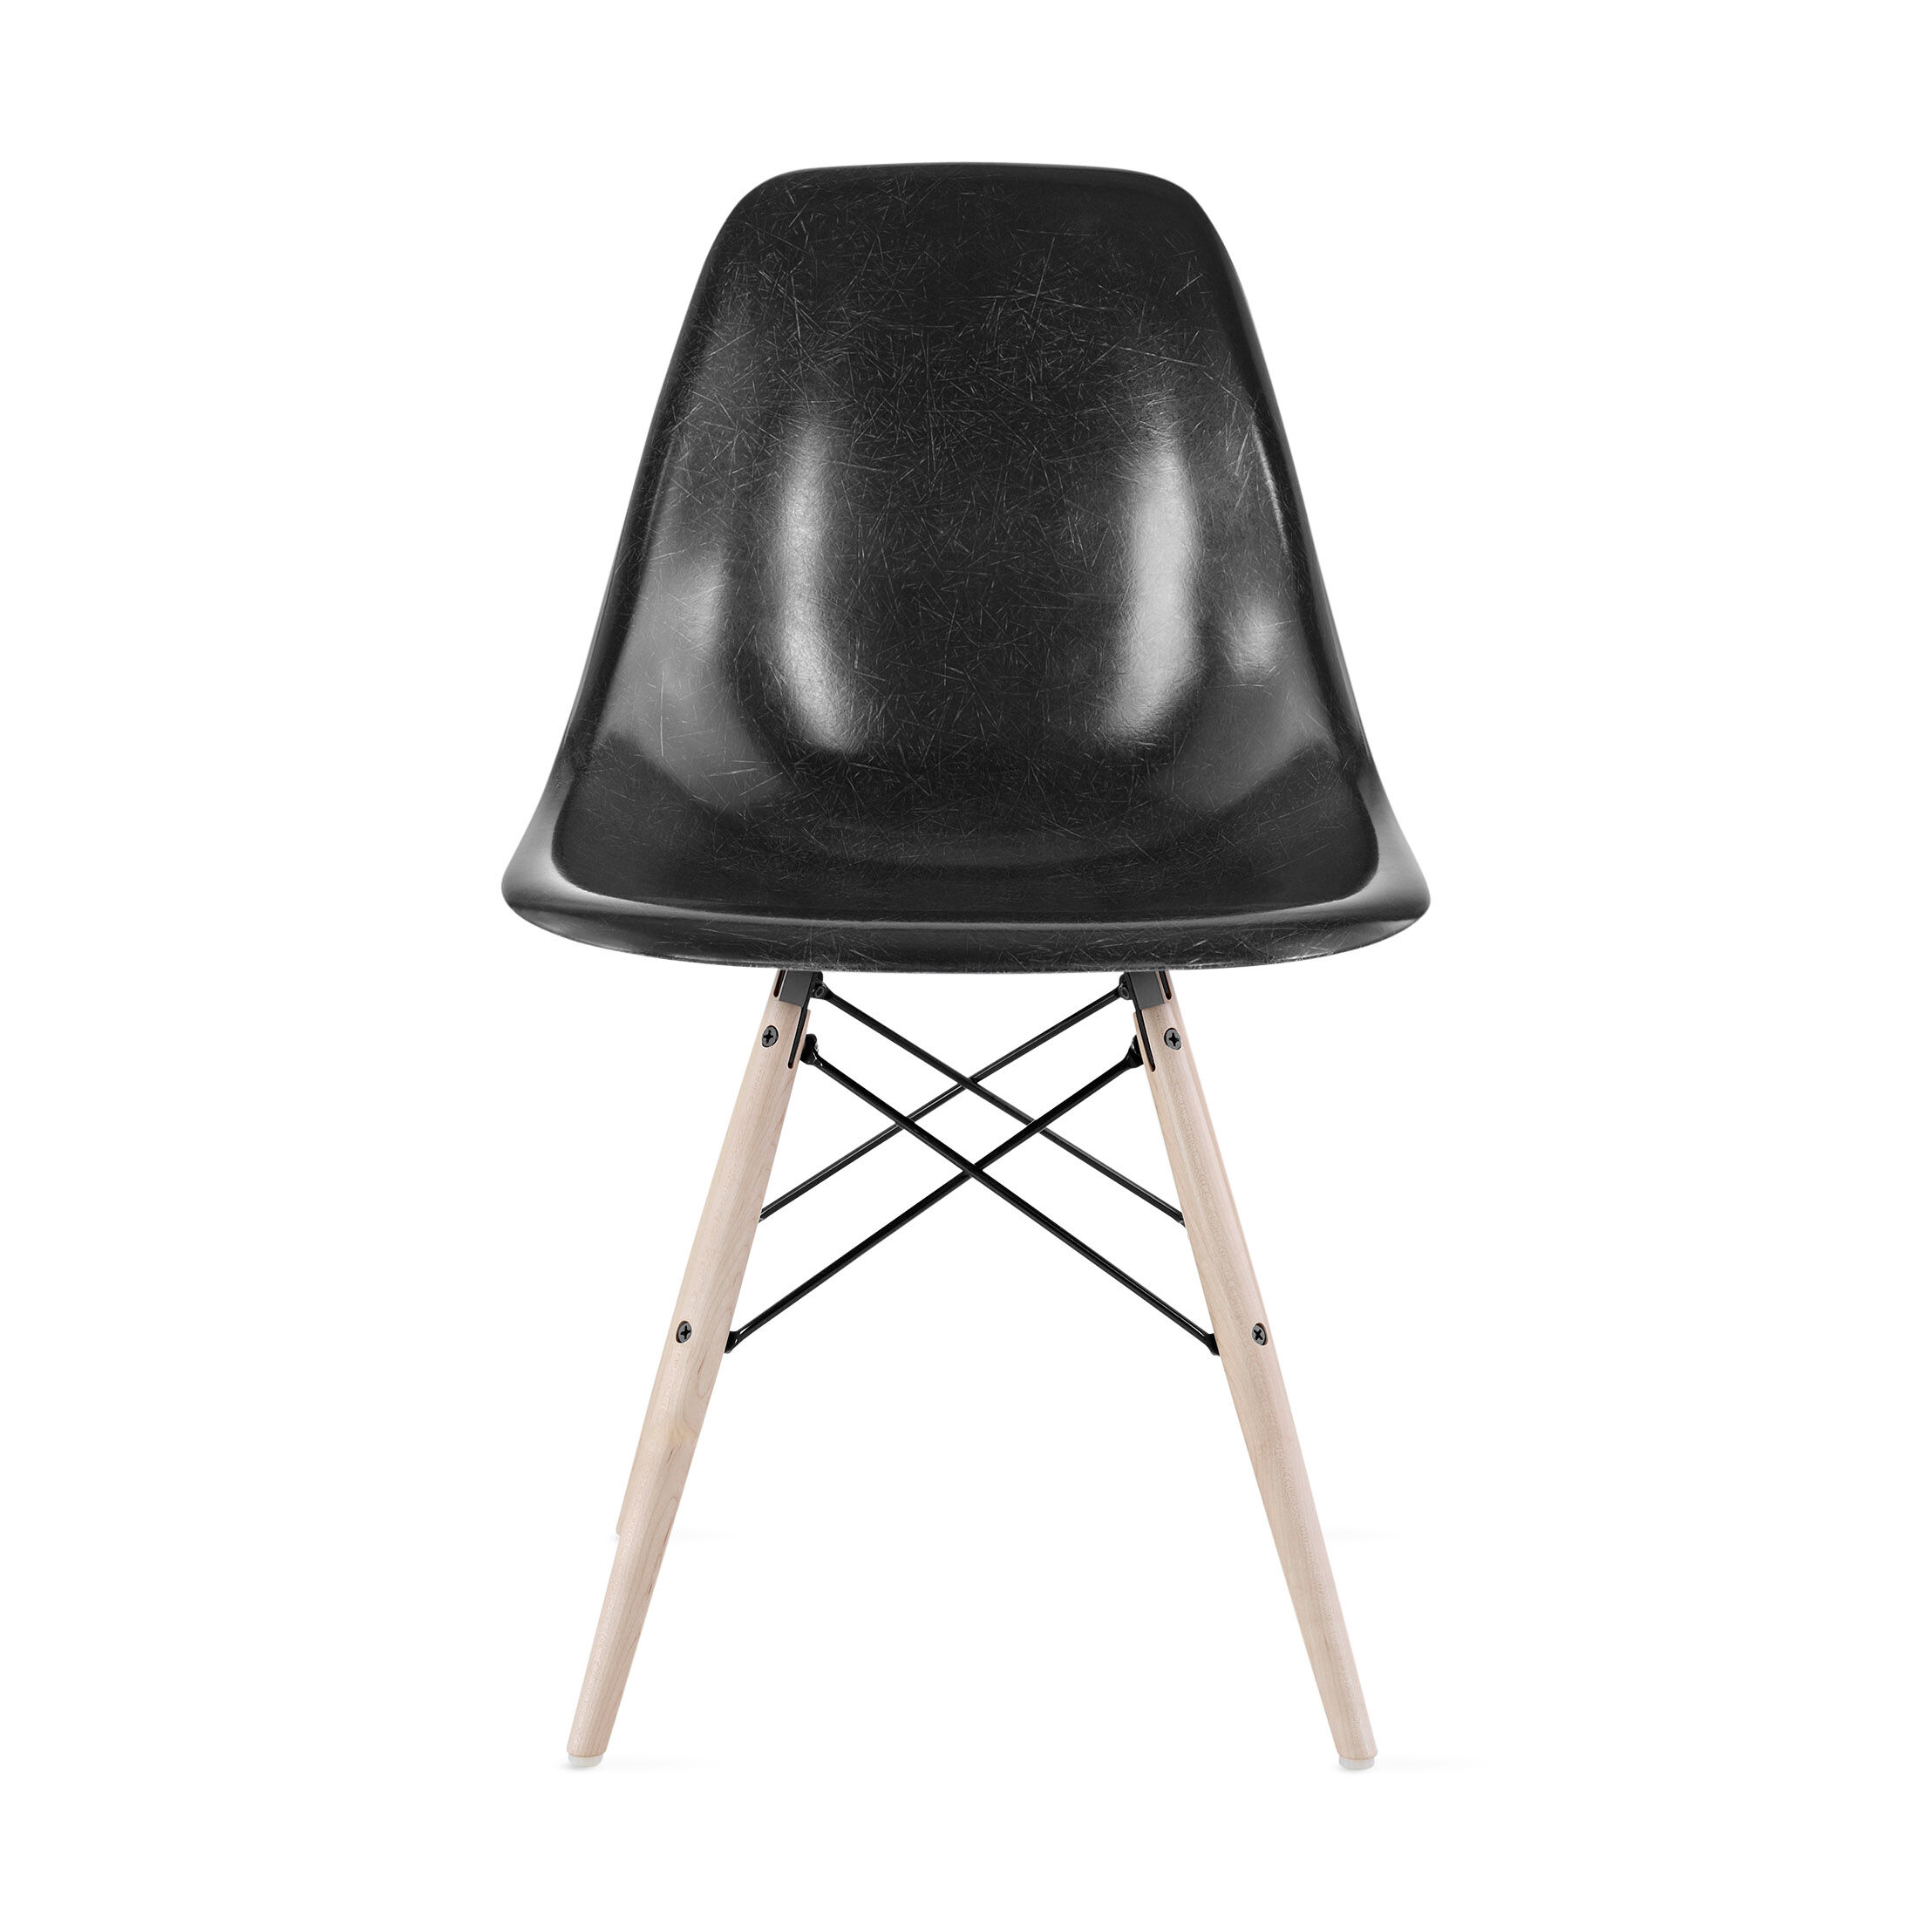 eames molded side chair padded lawn chairs fiberglass black moma design store reg